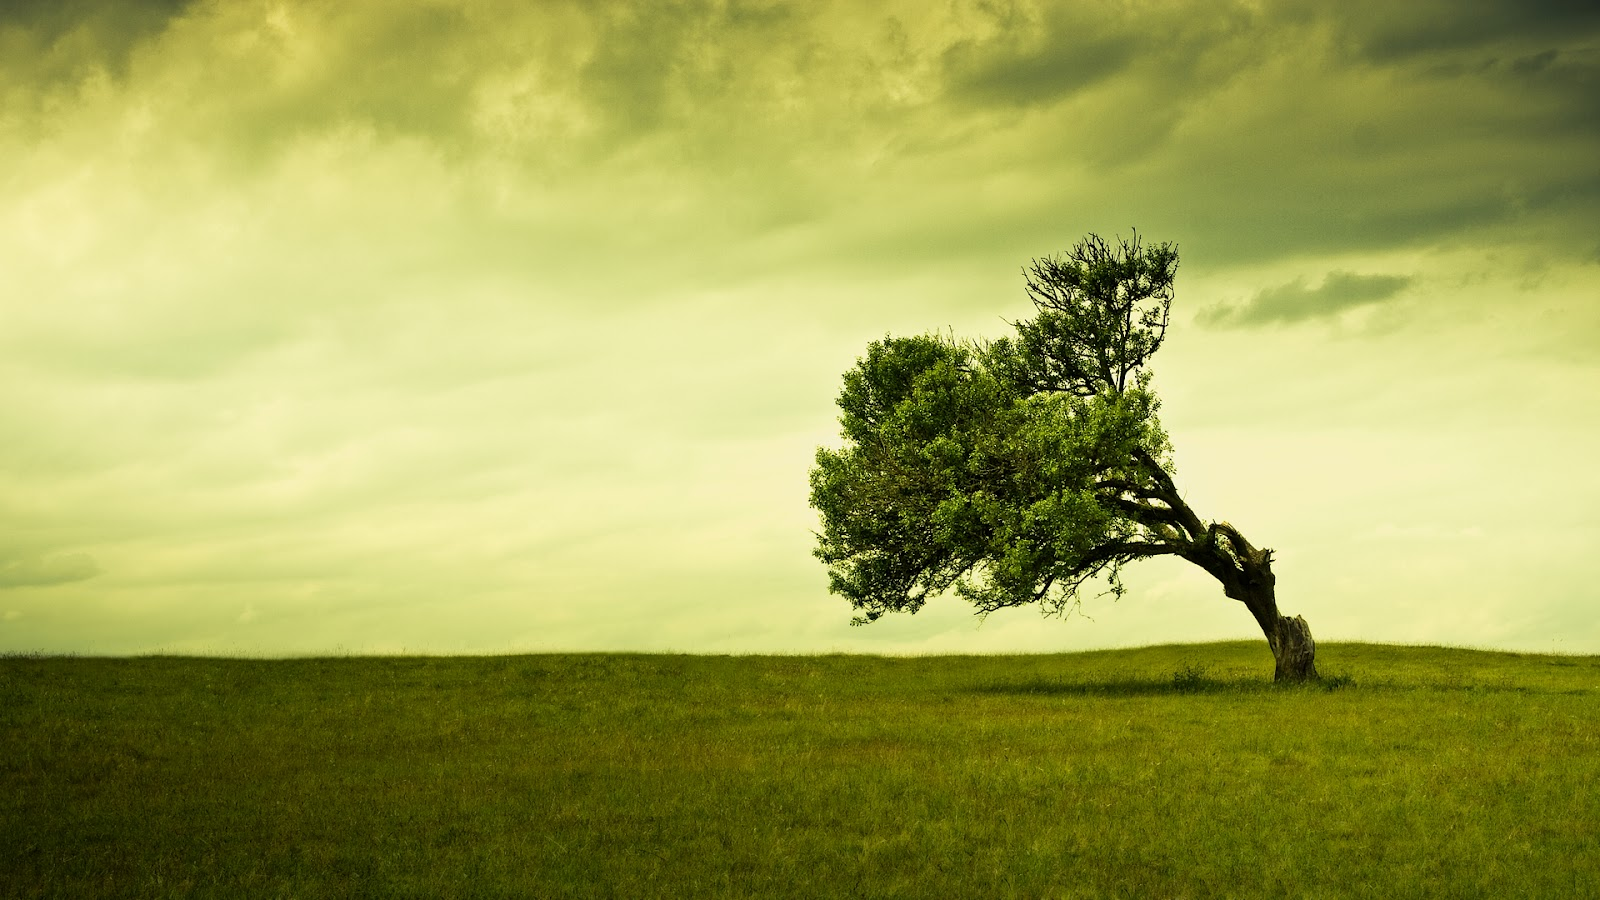 tree full HD nature background wallpaper for laptop widescreenjpg 1600x900